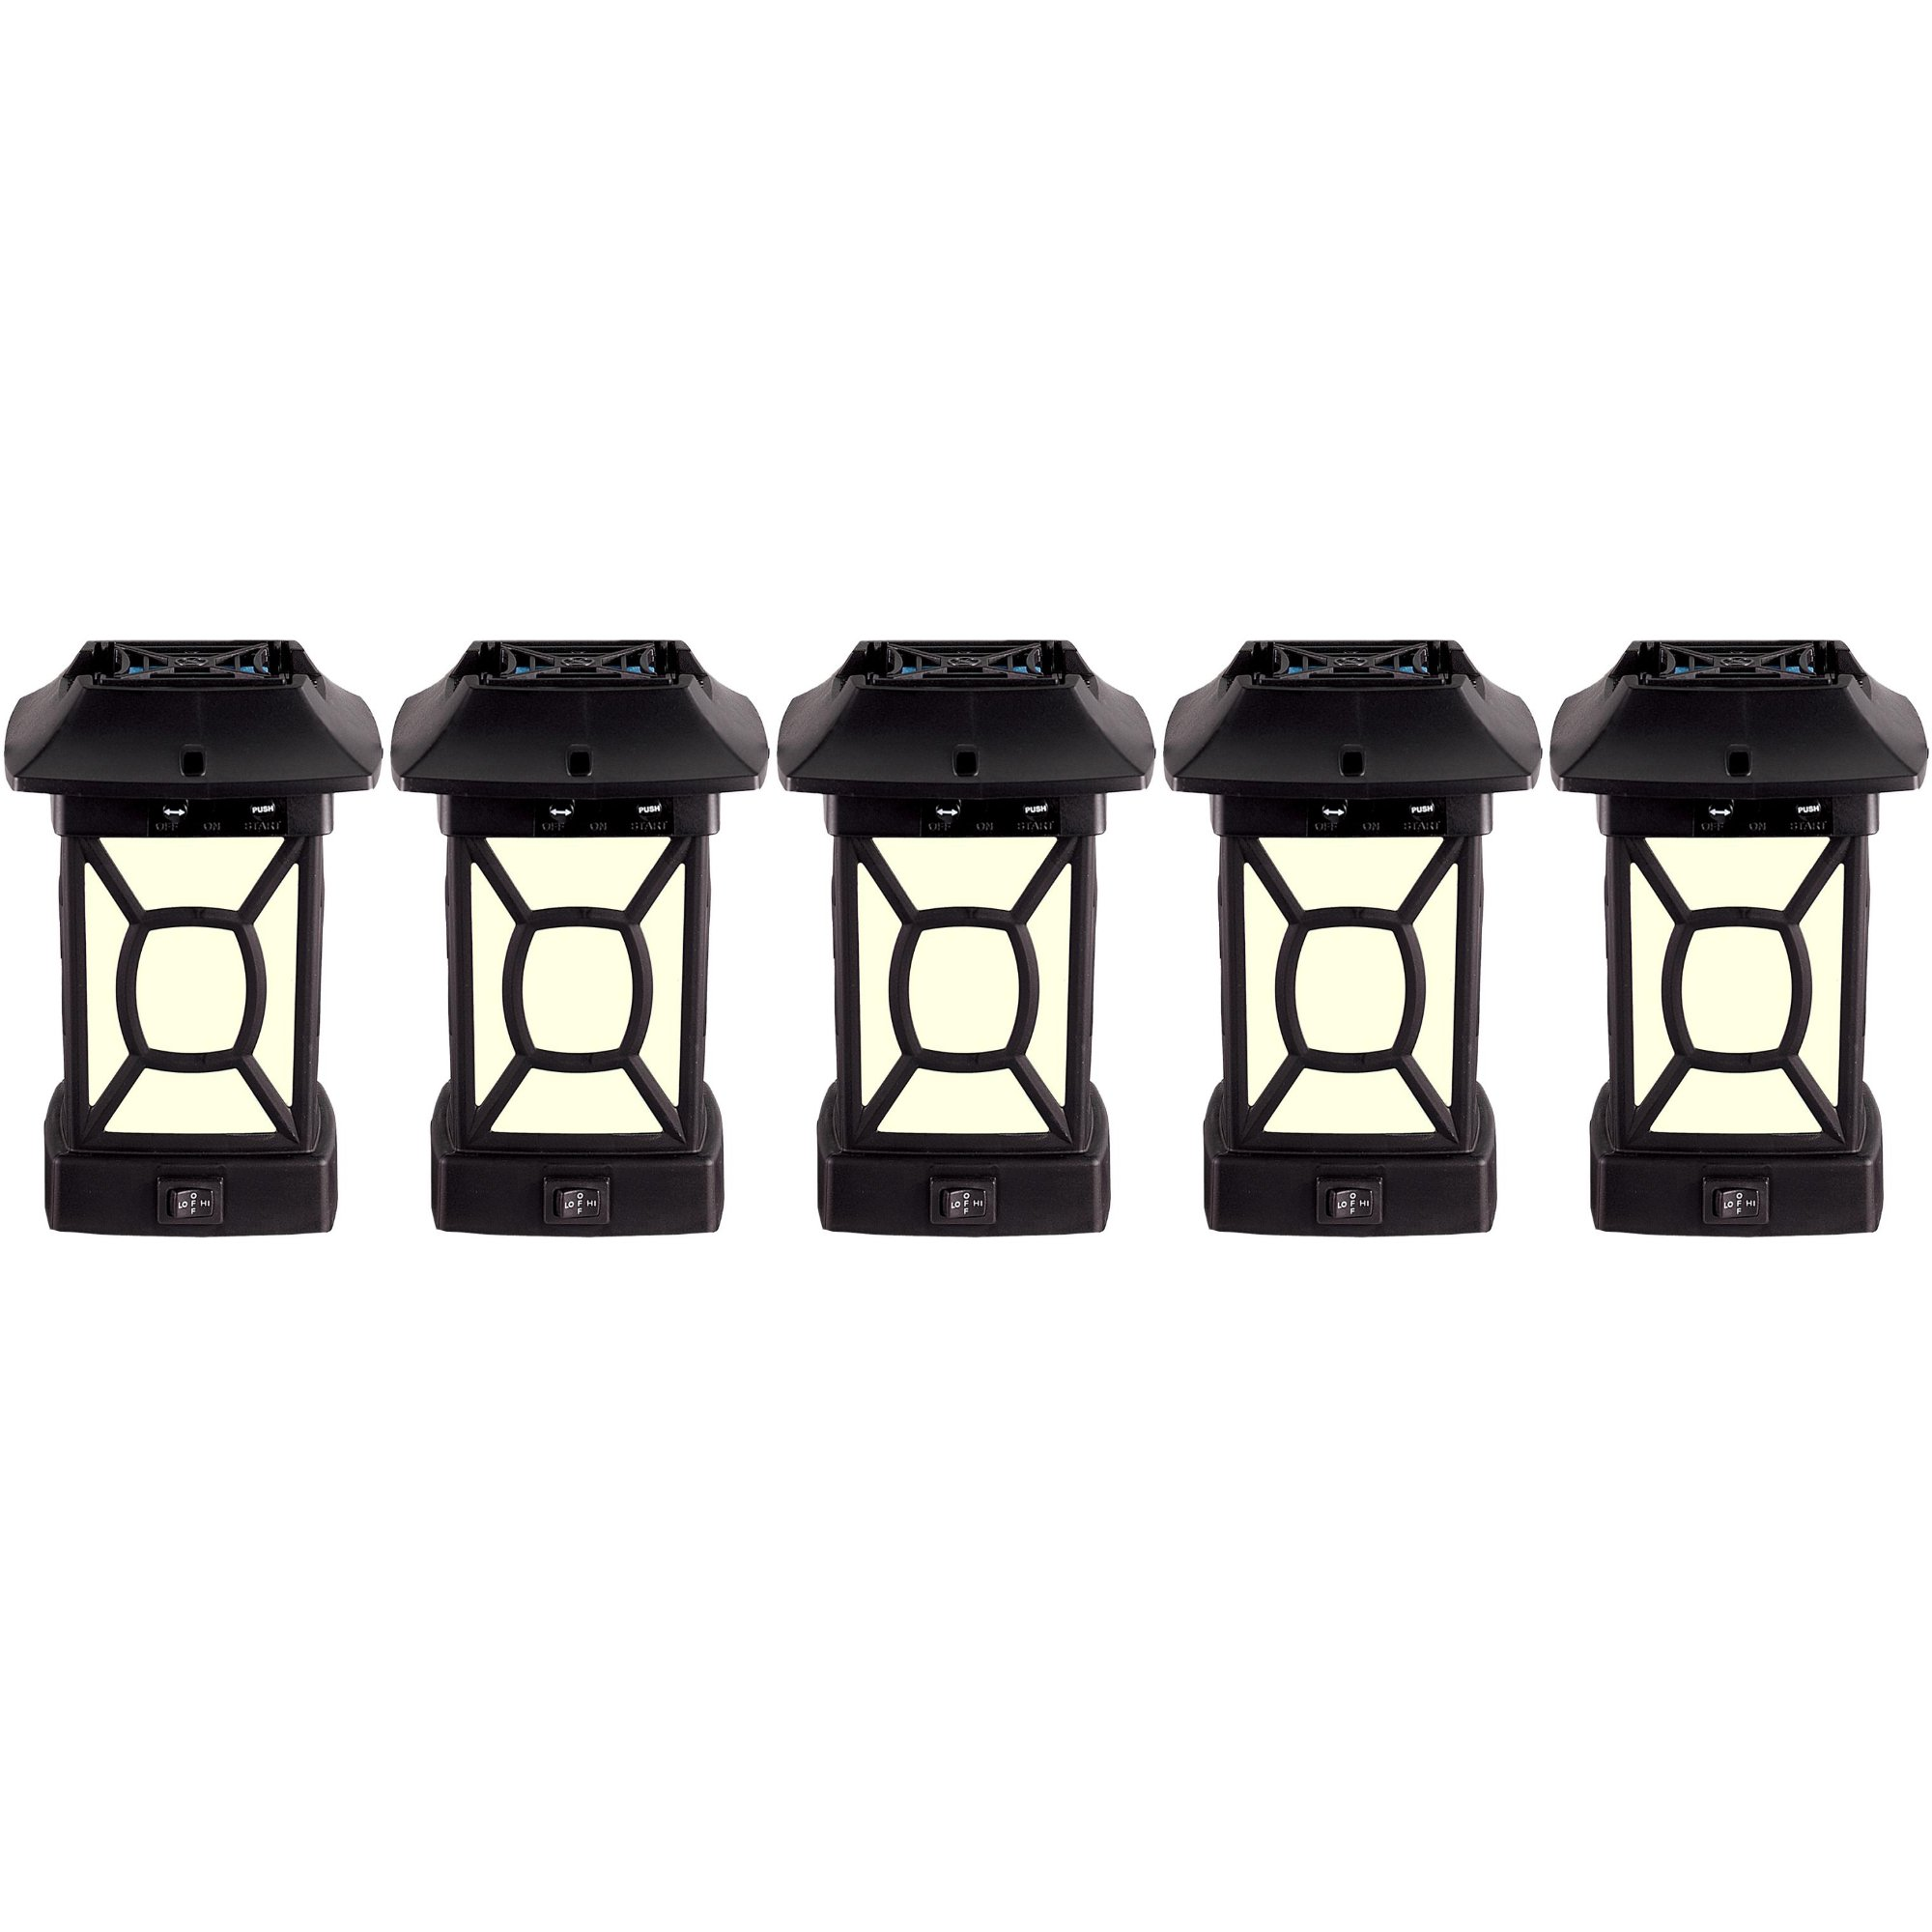 Thermacell Outdoor Mosquito Repeller plus Lantern, Cambridge Patio Shield, 5-Pack